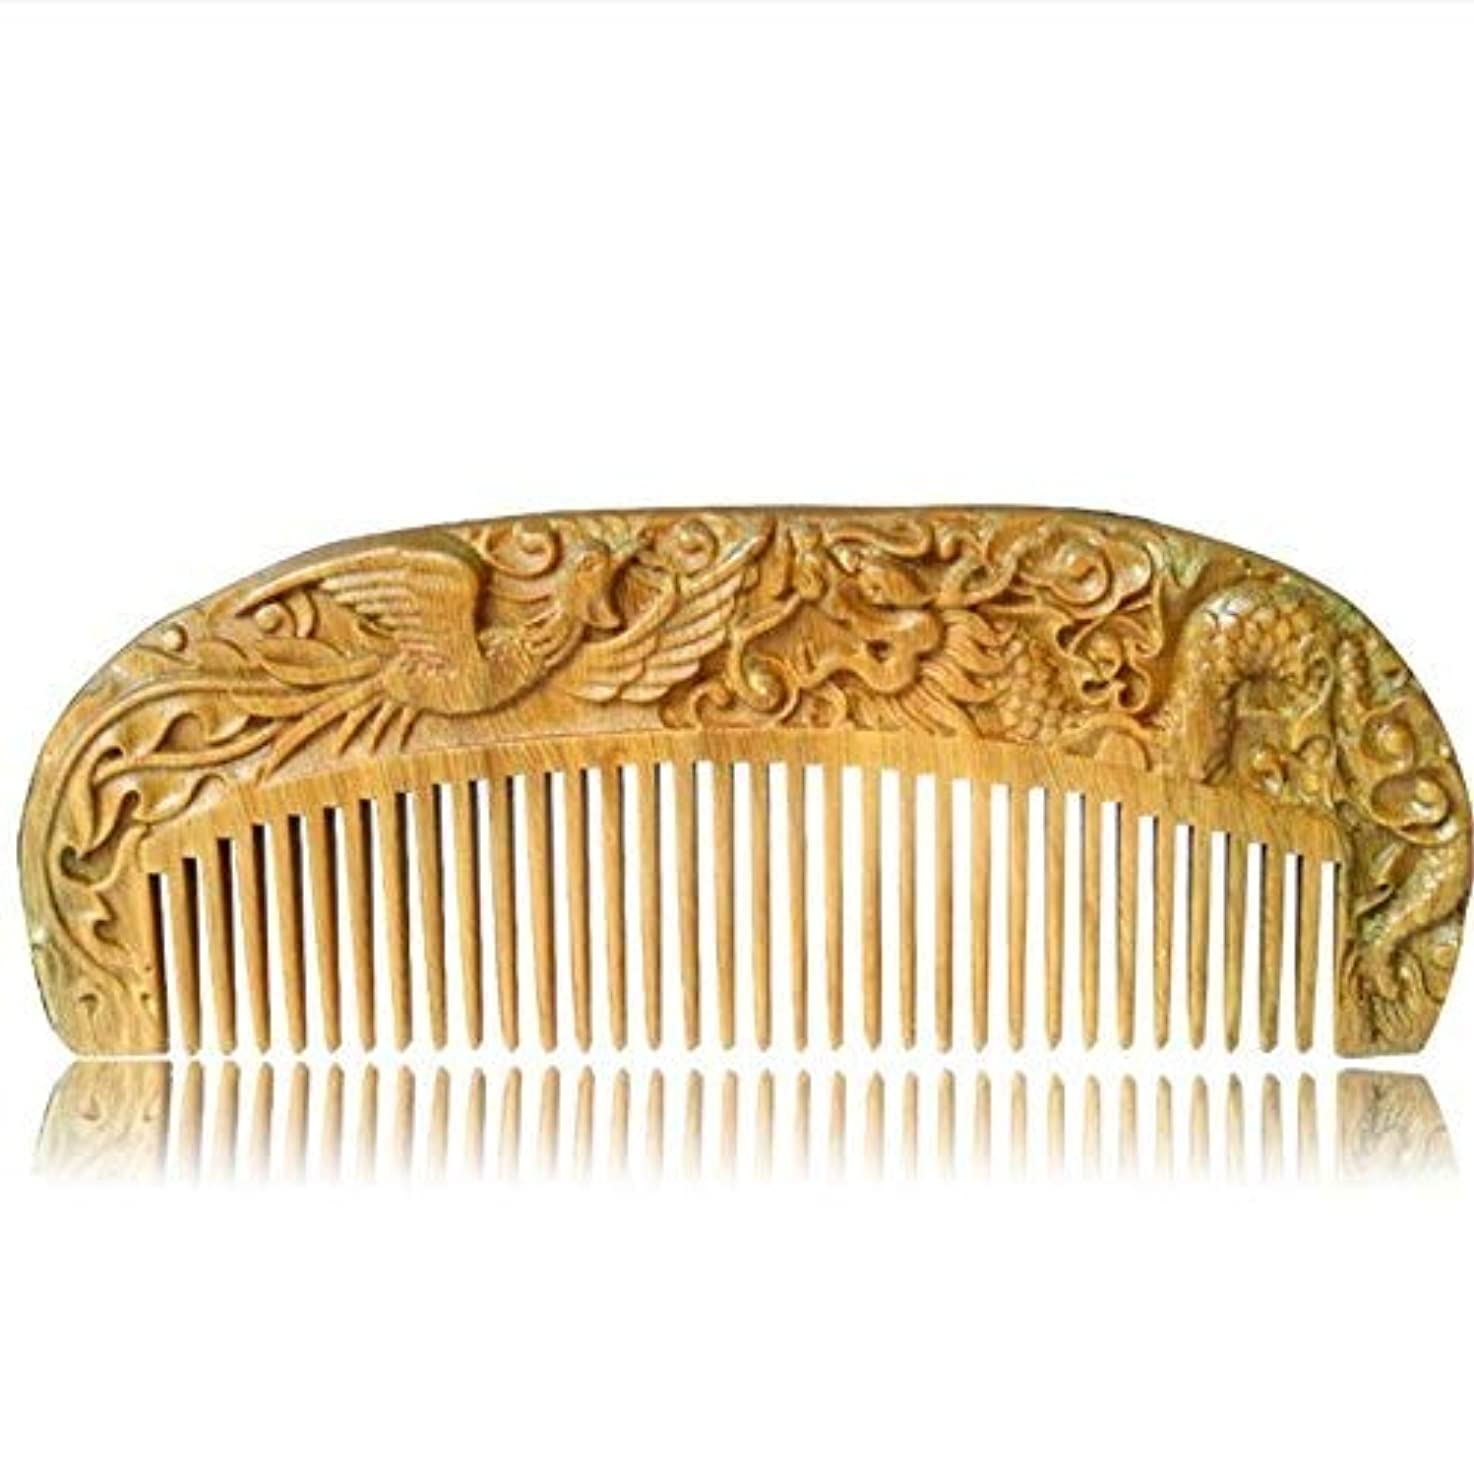 騒乱幻影トリッキーHandmade Carved Natural Sandalwood Hair Comb - Anti-Static Sandalwood Hair Comb Beard Brush Rake Comb Handmade...